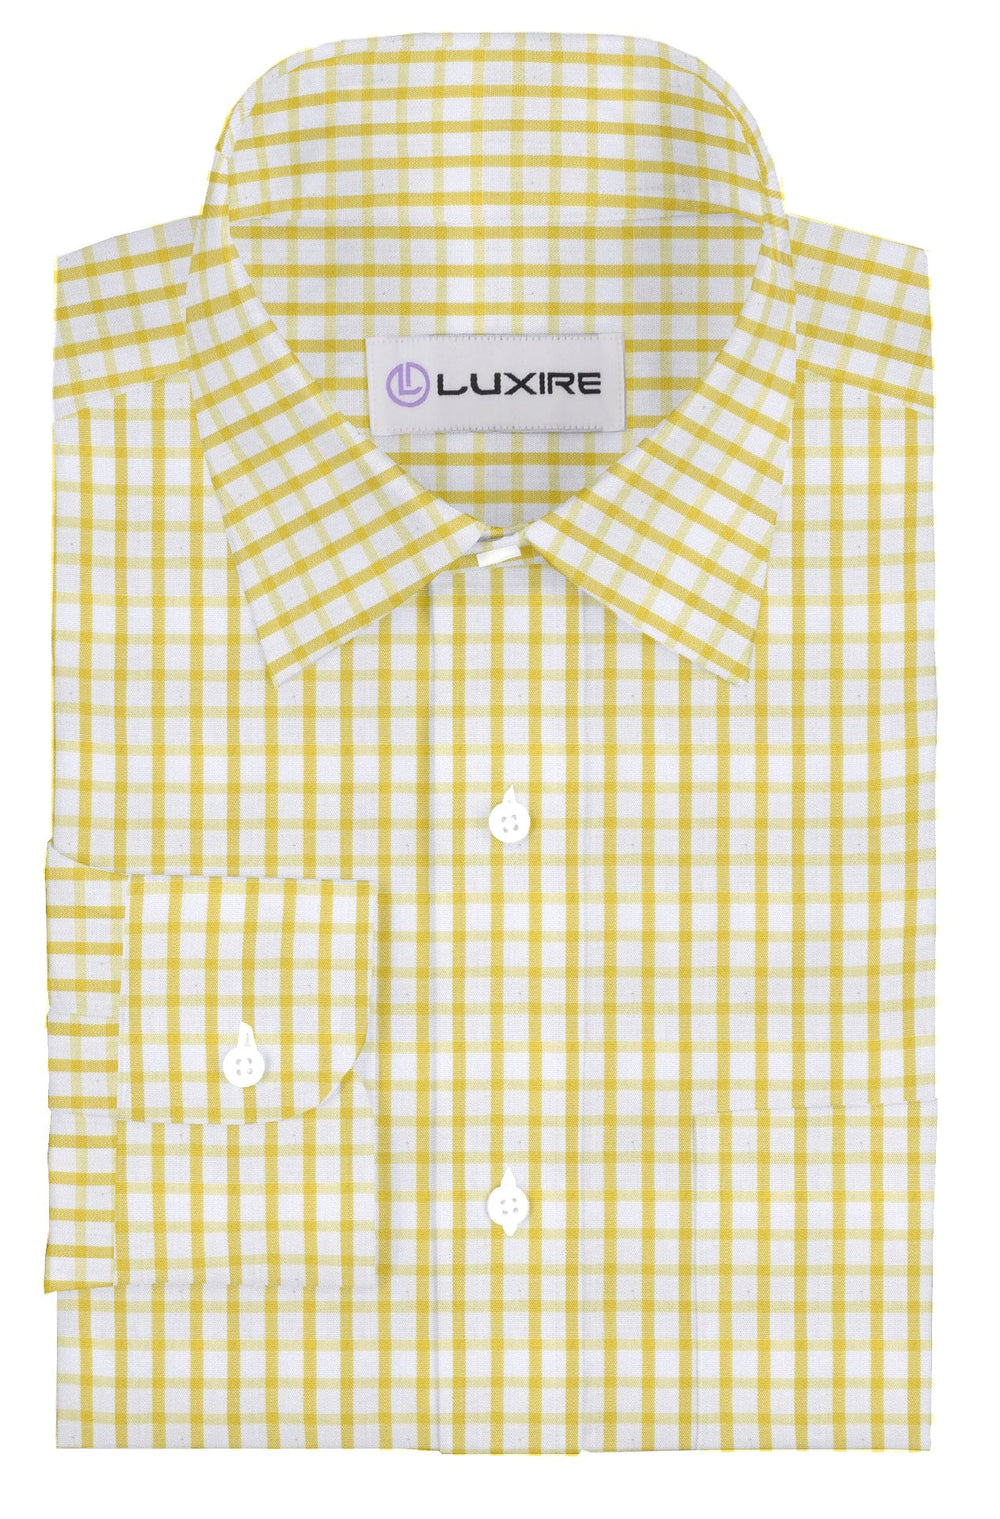 Friday Shirt: Yellow Graph Checks (228922629)